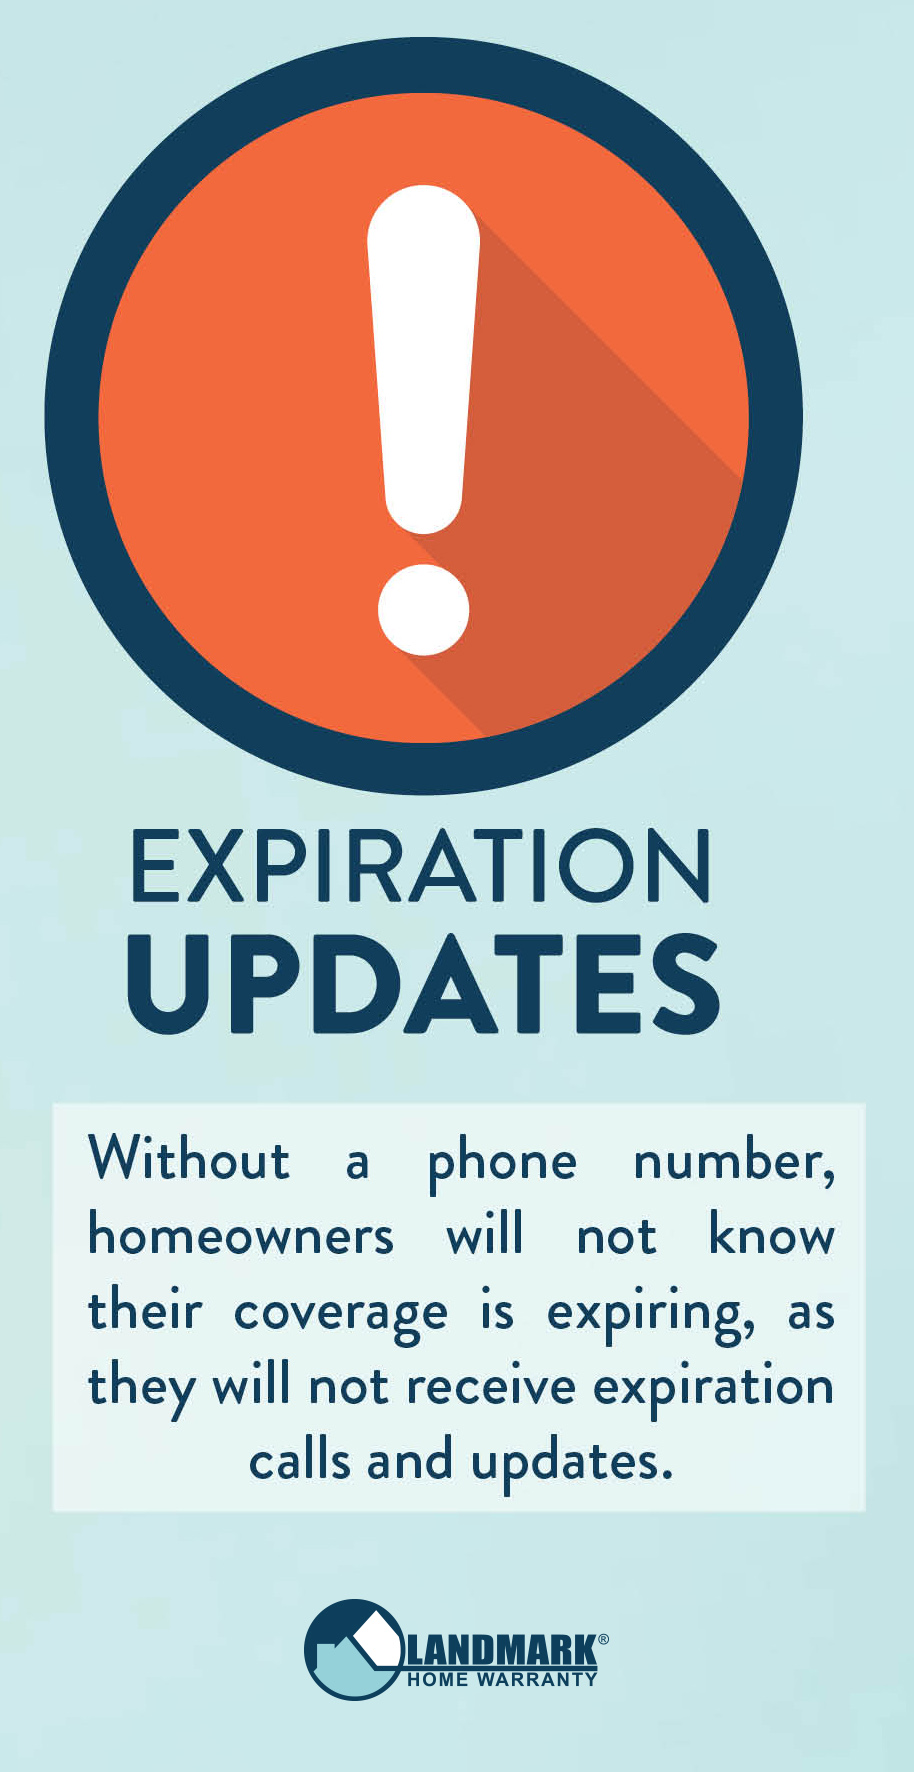 Without a phone number homeowners cannot get expiration date updates.